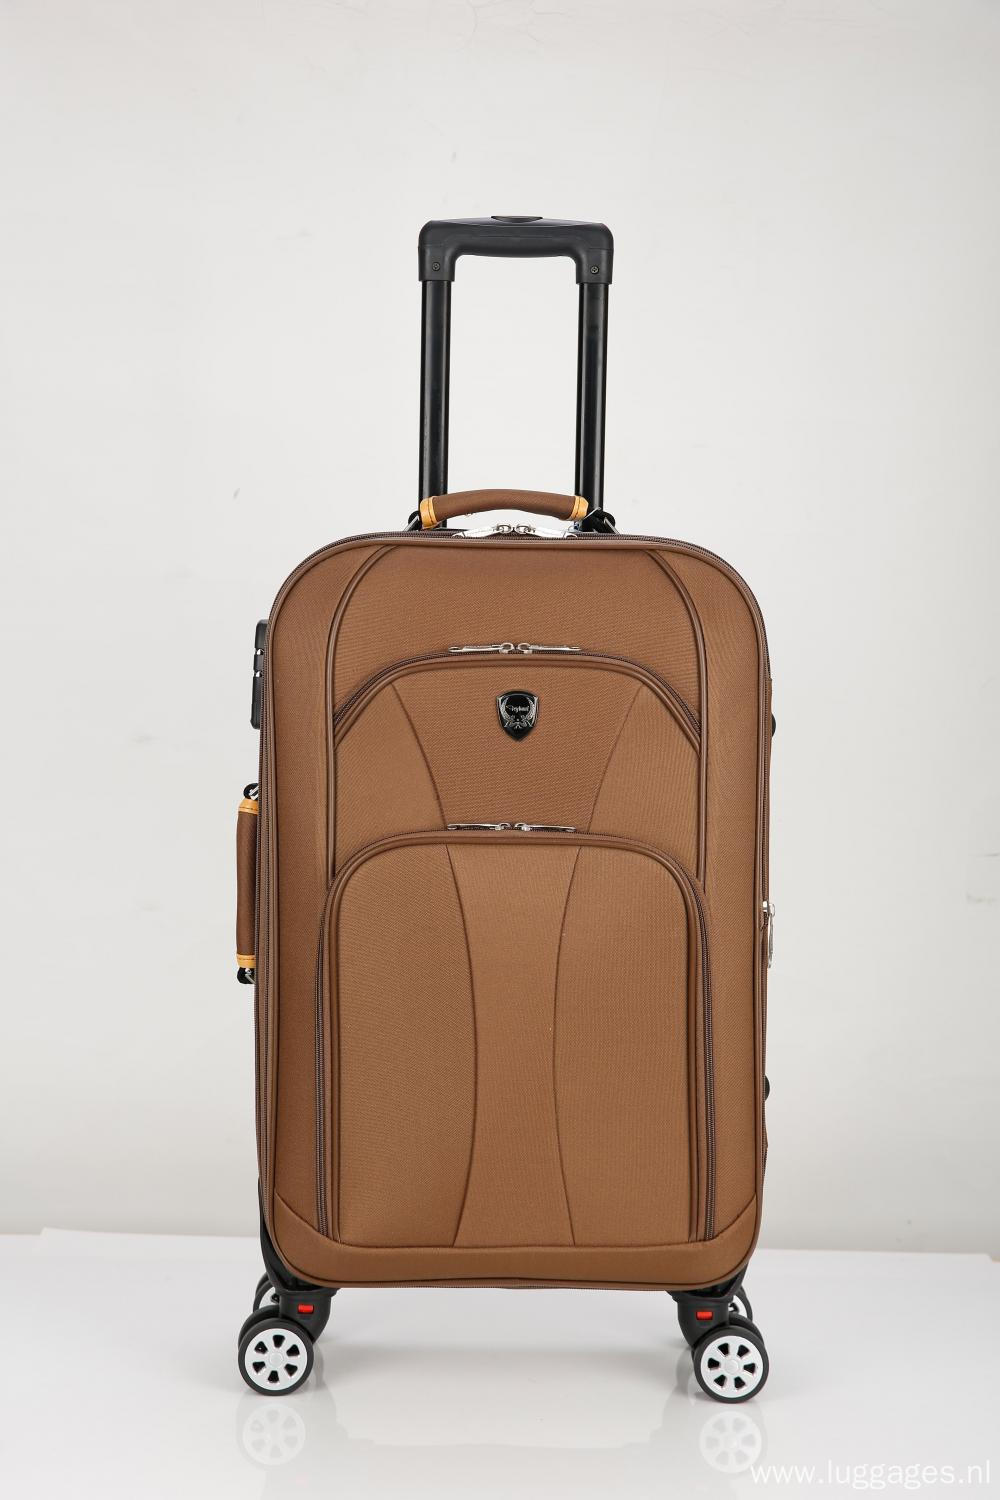 Coded lock soft fabric Luggage